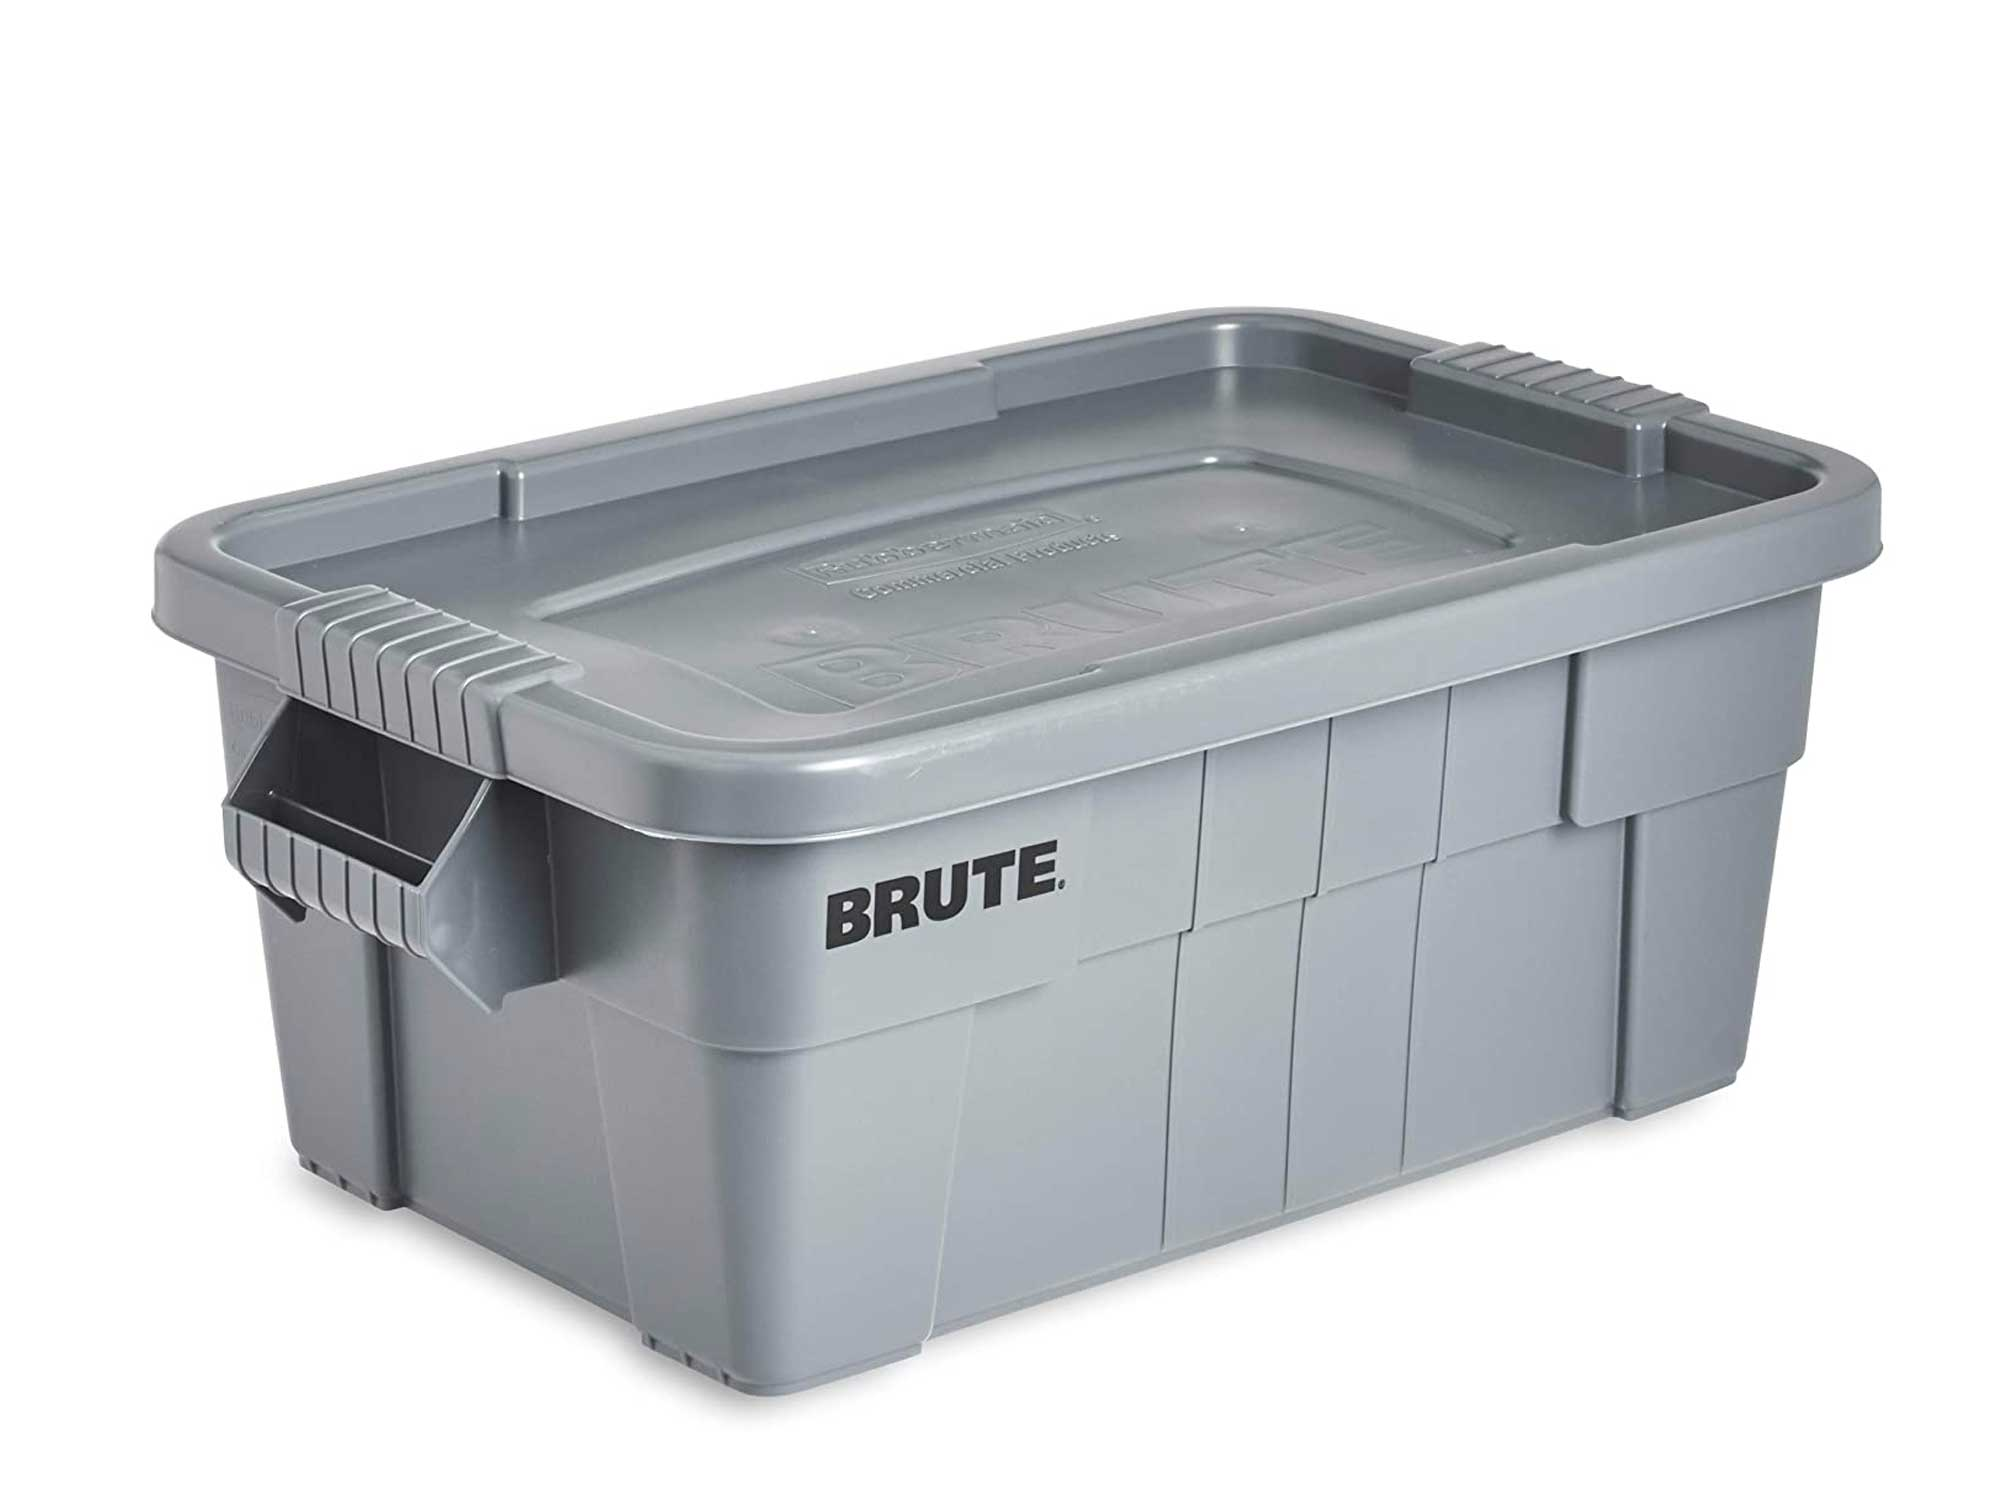 Rubbermaid Commercial Brute Tote Storage Bin With Lid, 14- Gallon, Gray